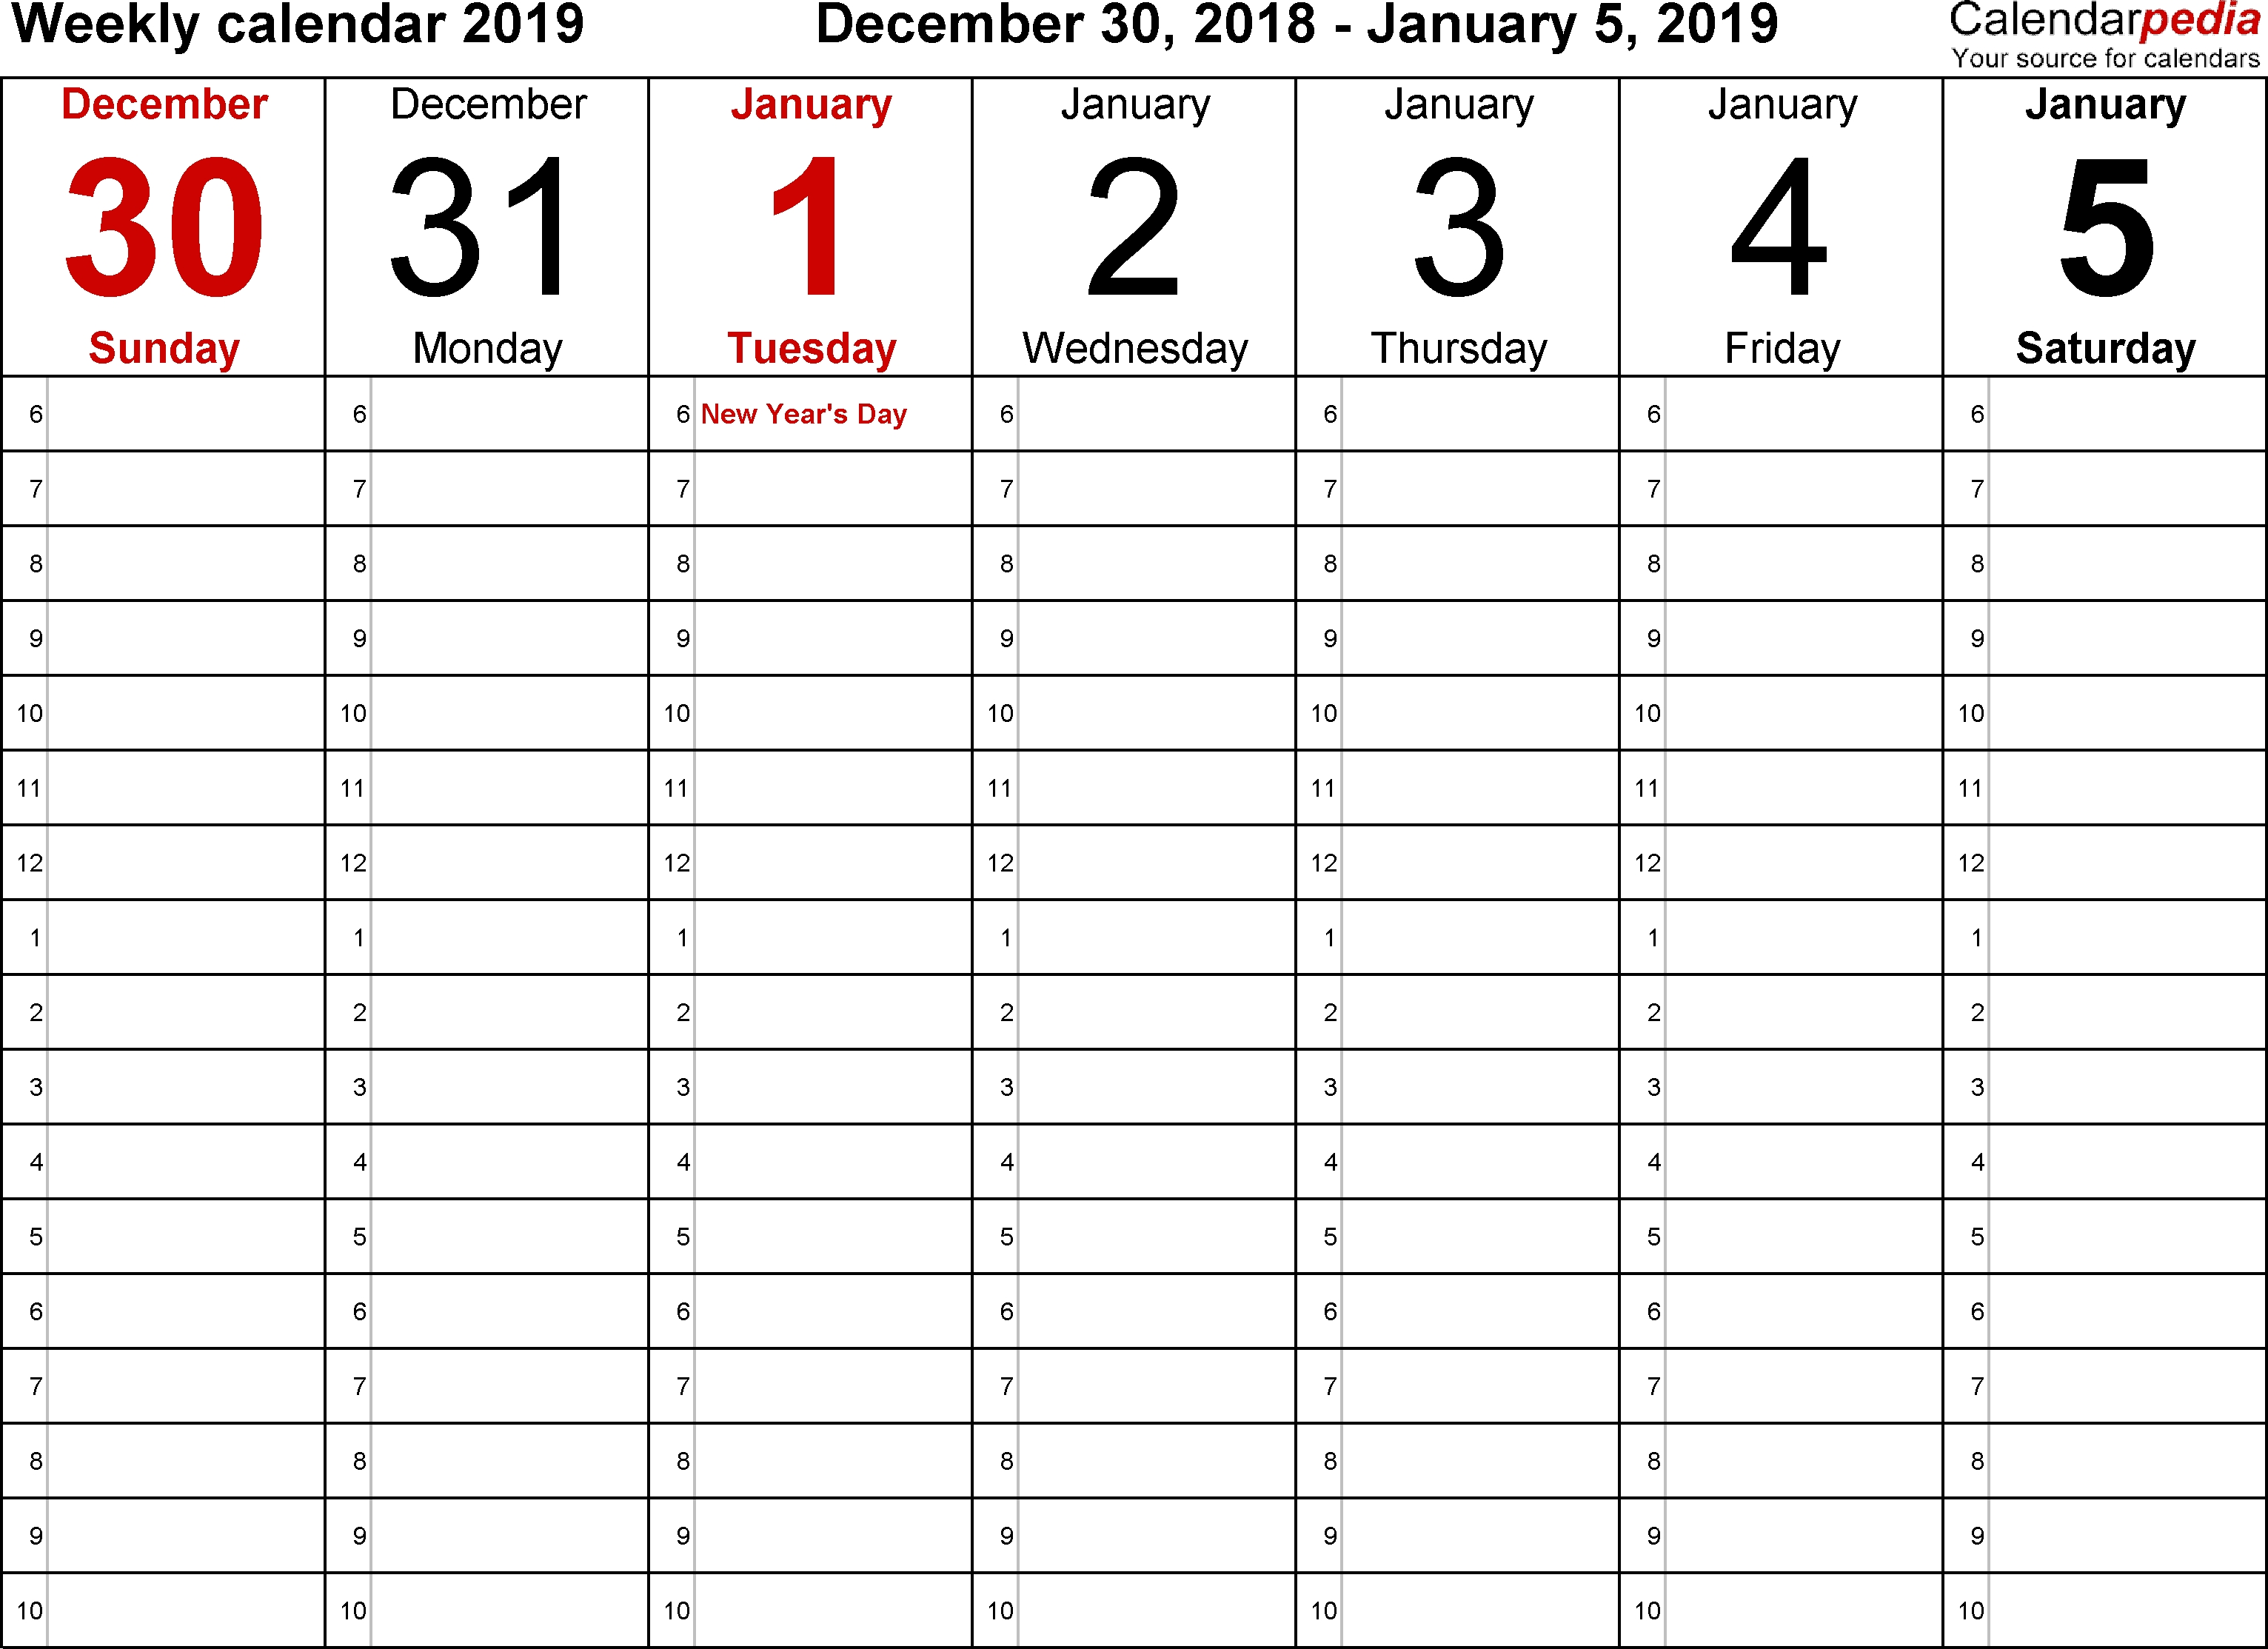 Weekly Calendar 2019 For Word - 12 Free Printable Templates within Free Printable Blank Weekly Schedule